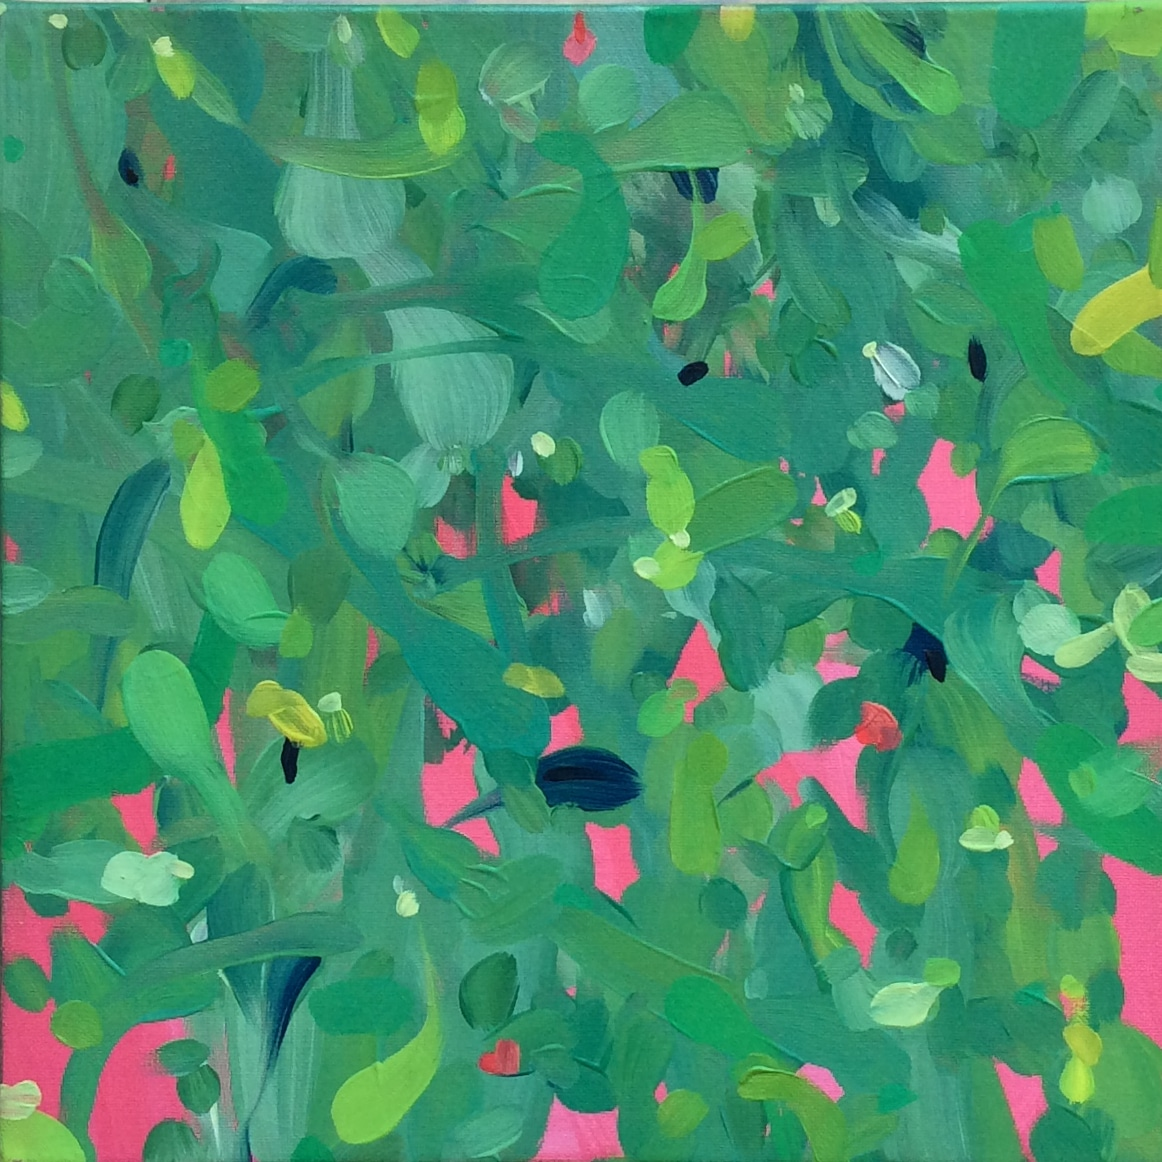 elisa muliere, pittura, astrazione, painting, abstraction